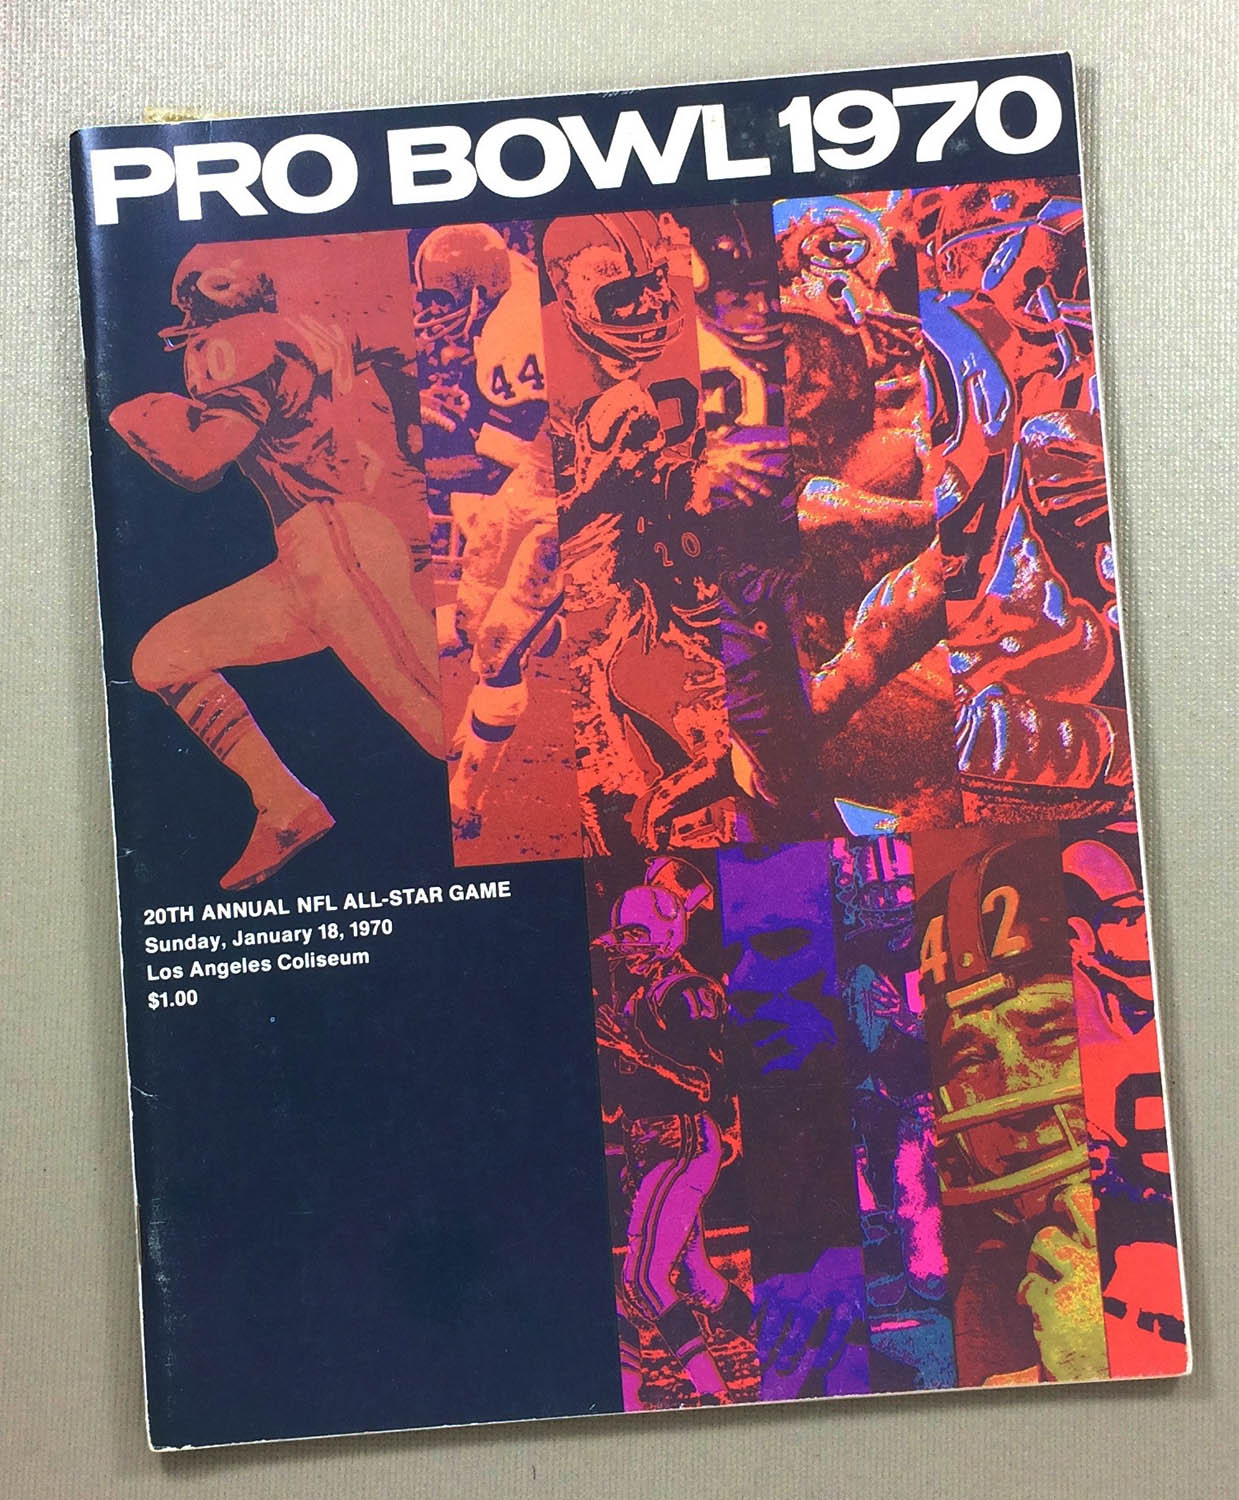 1970 Pro Bowl Program